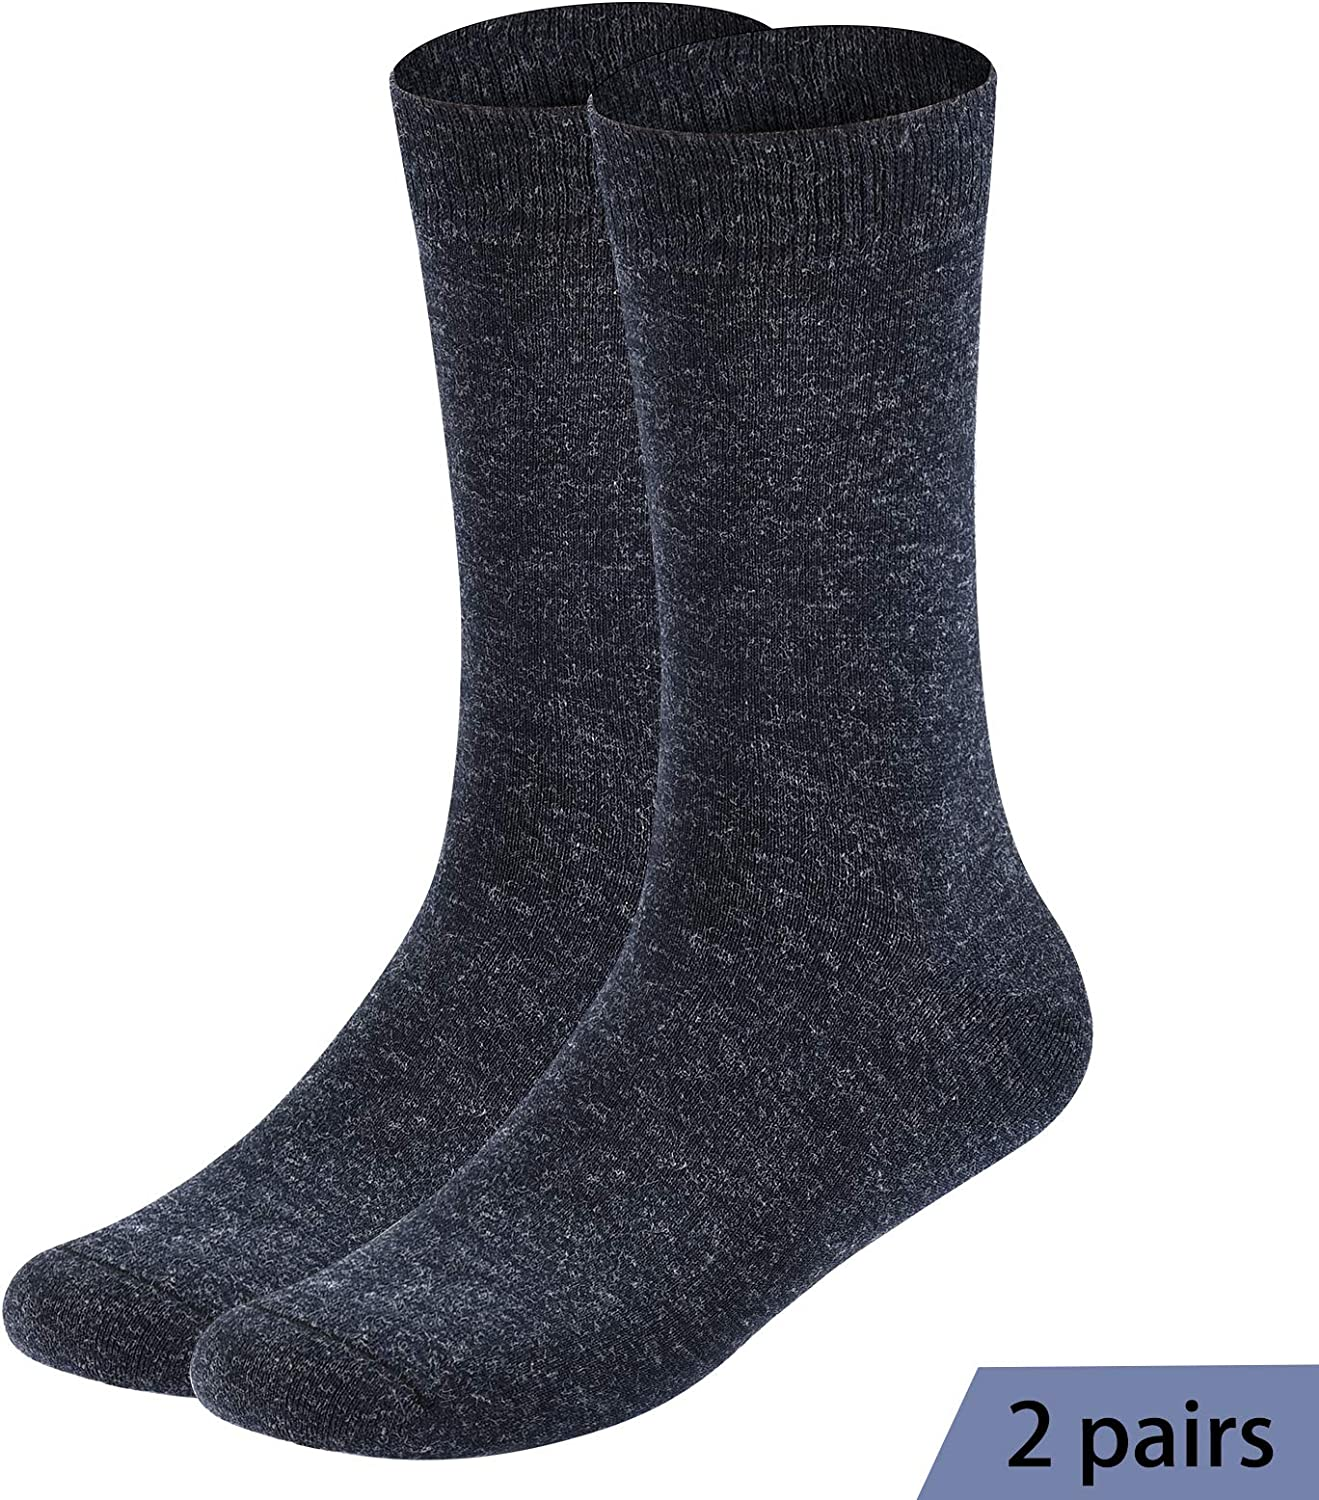 Pack of 6 Mens Socks Dress Socks Winter Wool Socks Business Soft and Comfortable Breathable ,Size 6-12…